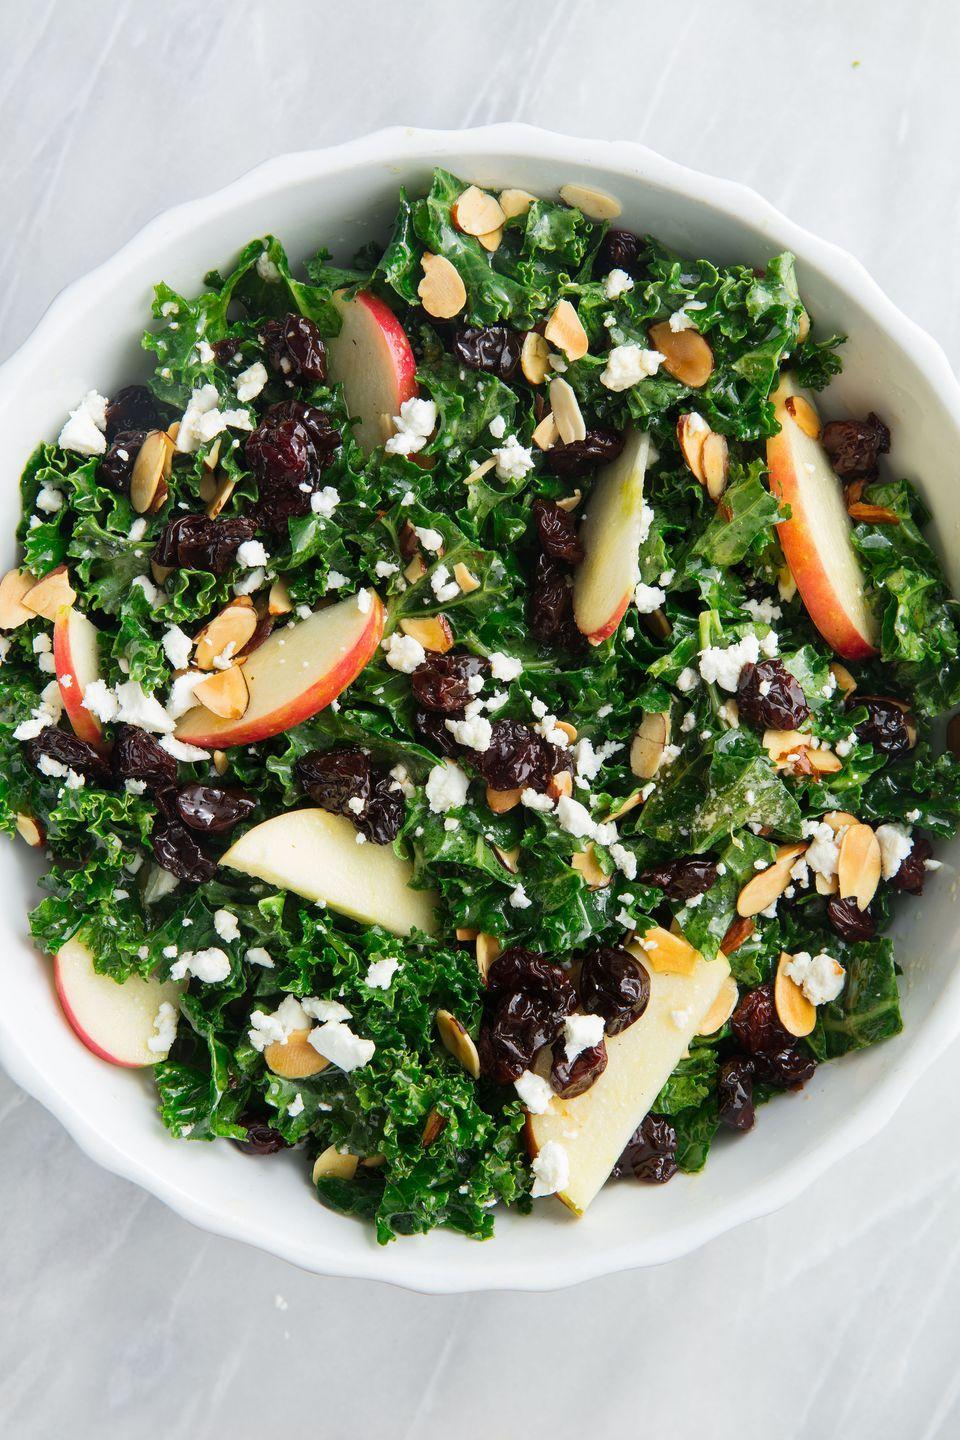 """<p>Need something else to do with your apple haul?</p><p>Get the recipe from <a href=""""https://www.delish.com/cooking/recipe-ideas/a20088309/best-kale-salad-recipe/"""" rel=""""nofollow noopener"""" target=""""_blank"""" data-ylk=""""slk:Delish"""" class=""""link rapid-noclick-resp"""">Delish</a>.</p>"""